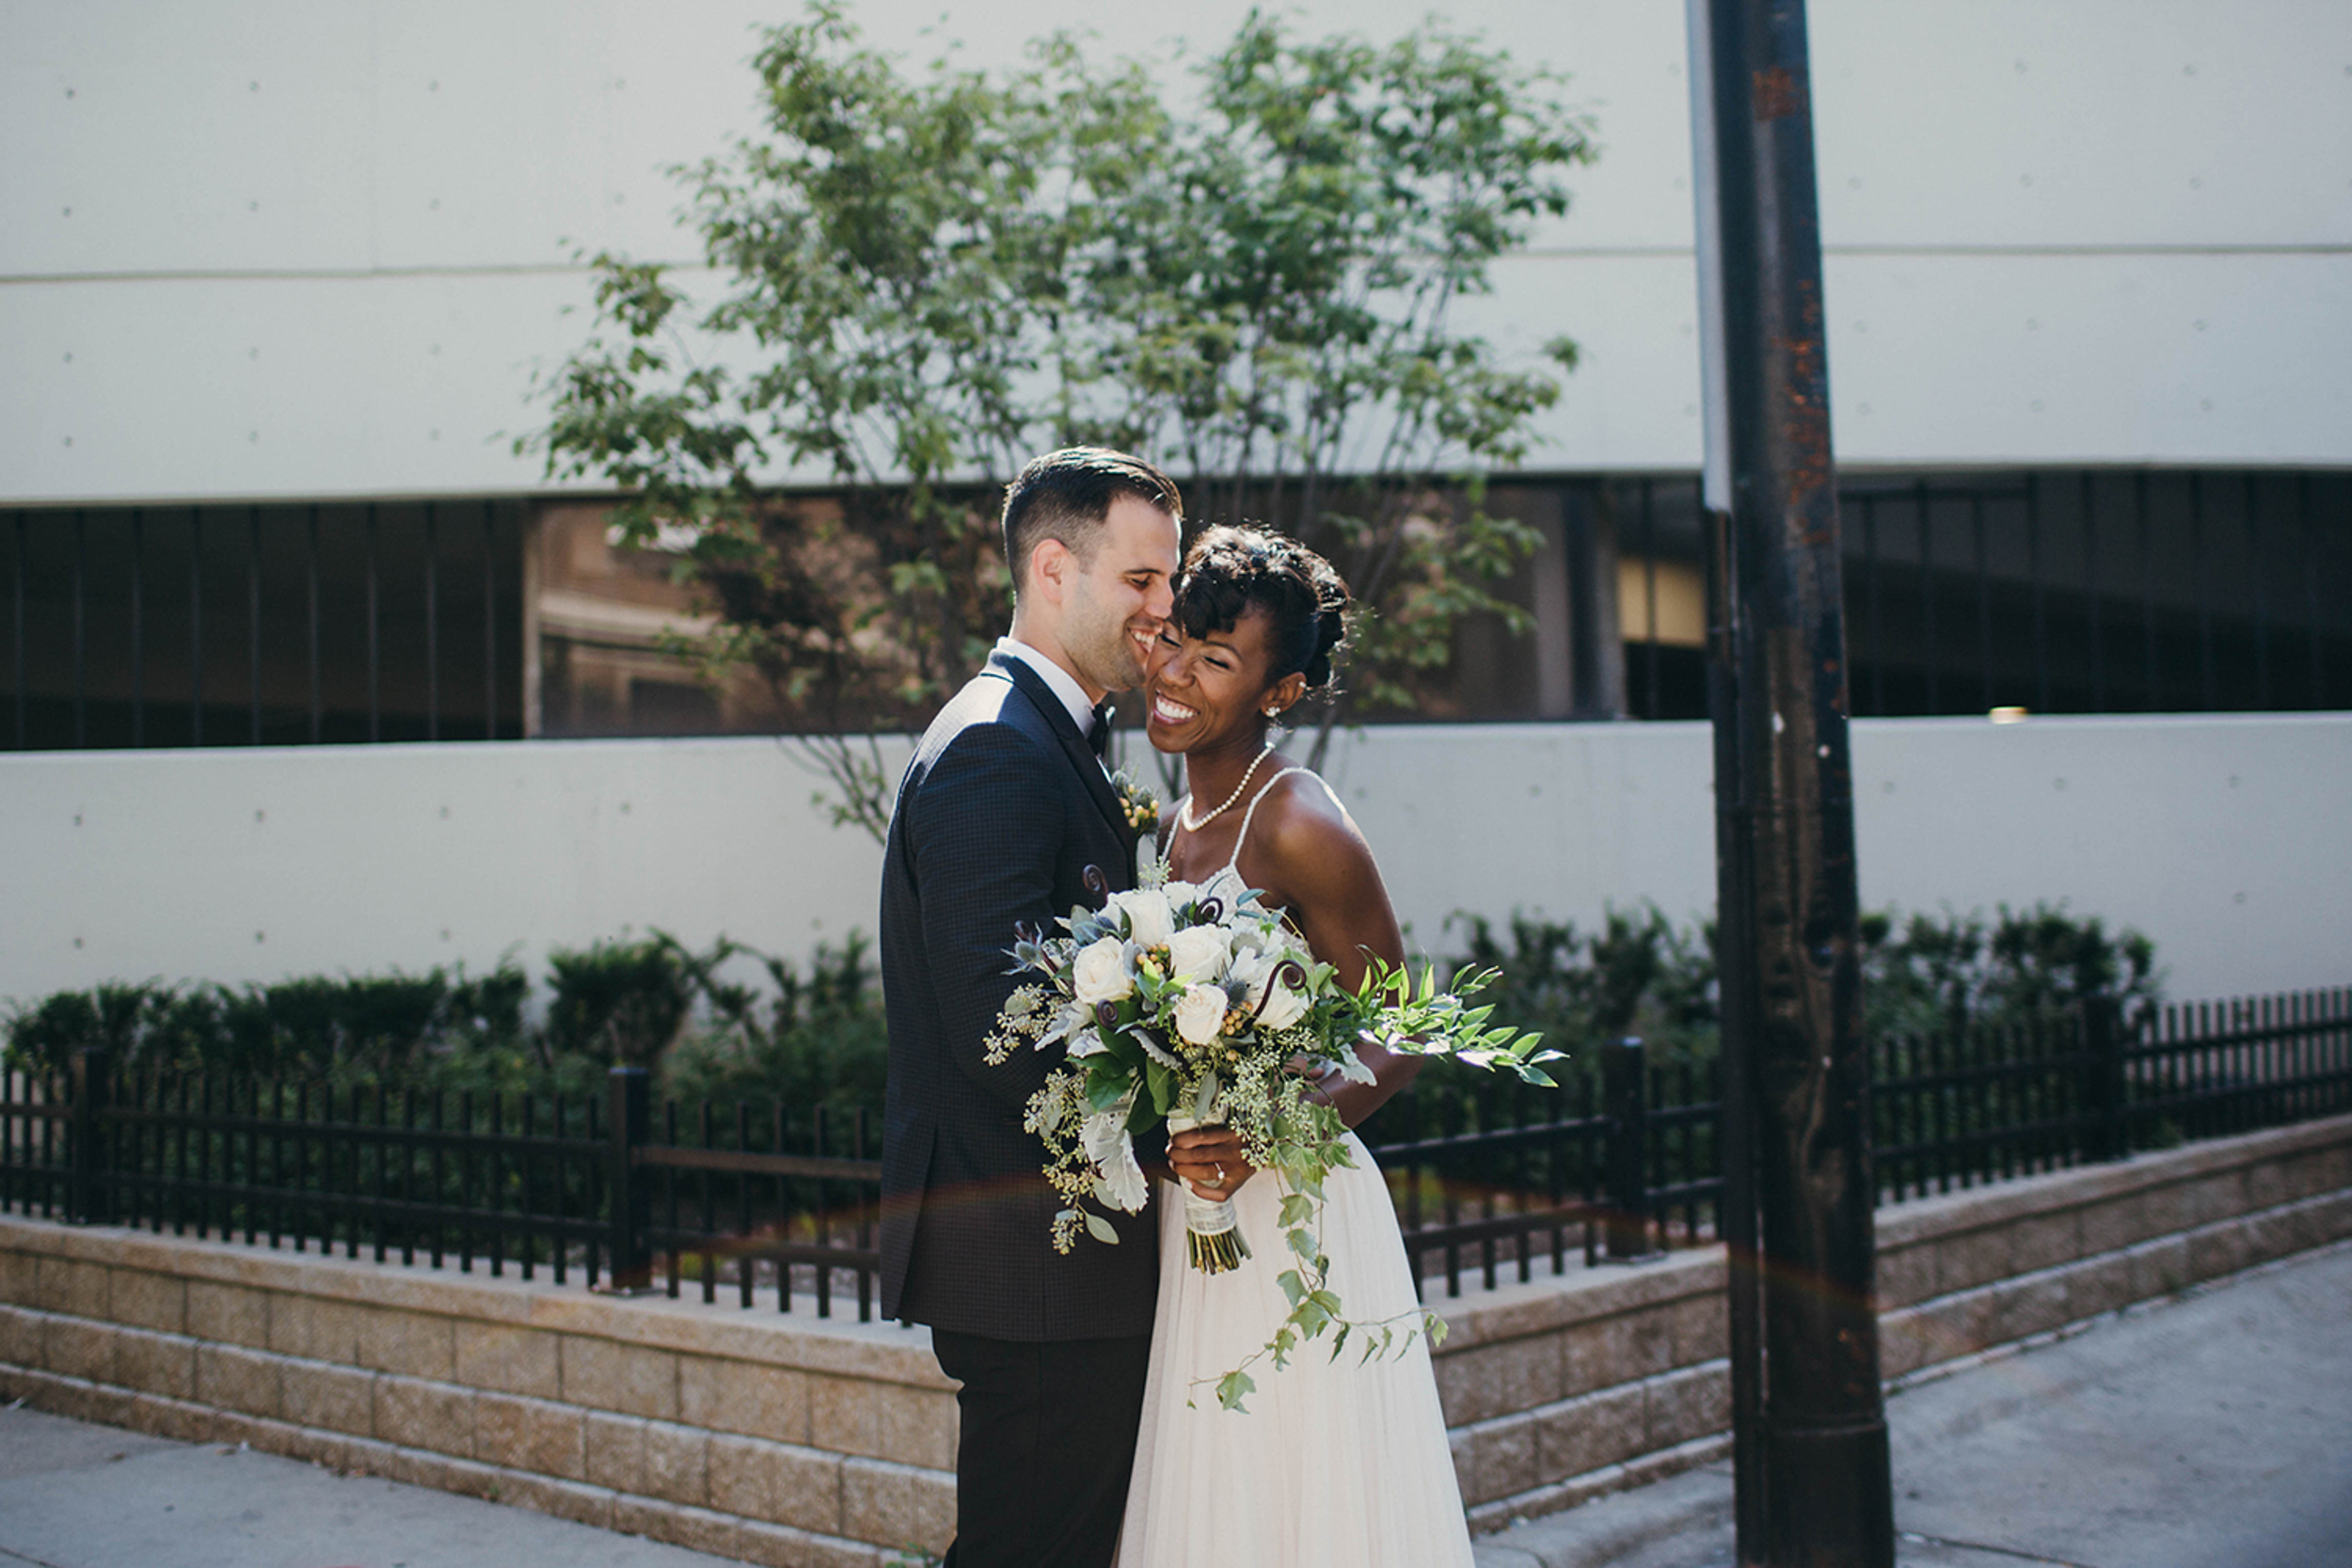 chicago.wedding.urban.intimate.zed451.lake.milton olive park-39.jpg